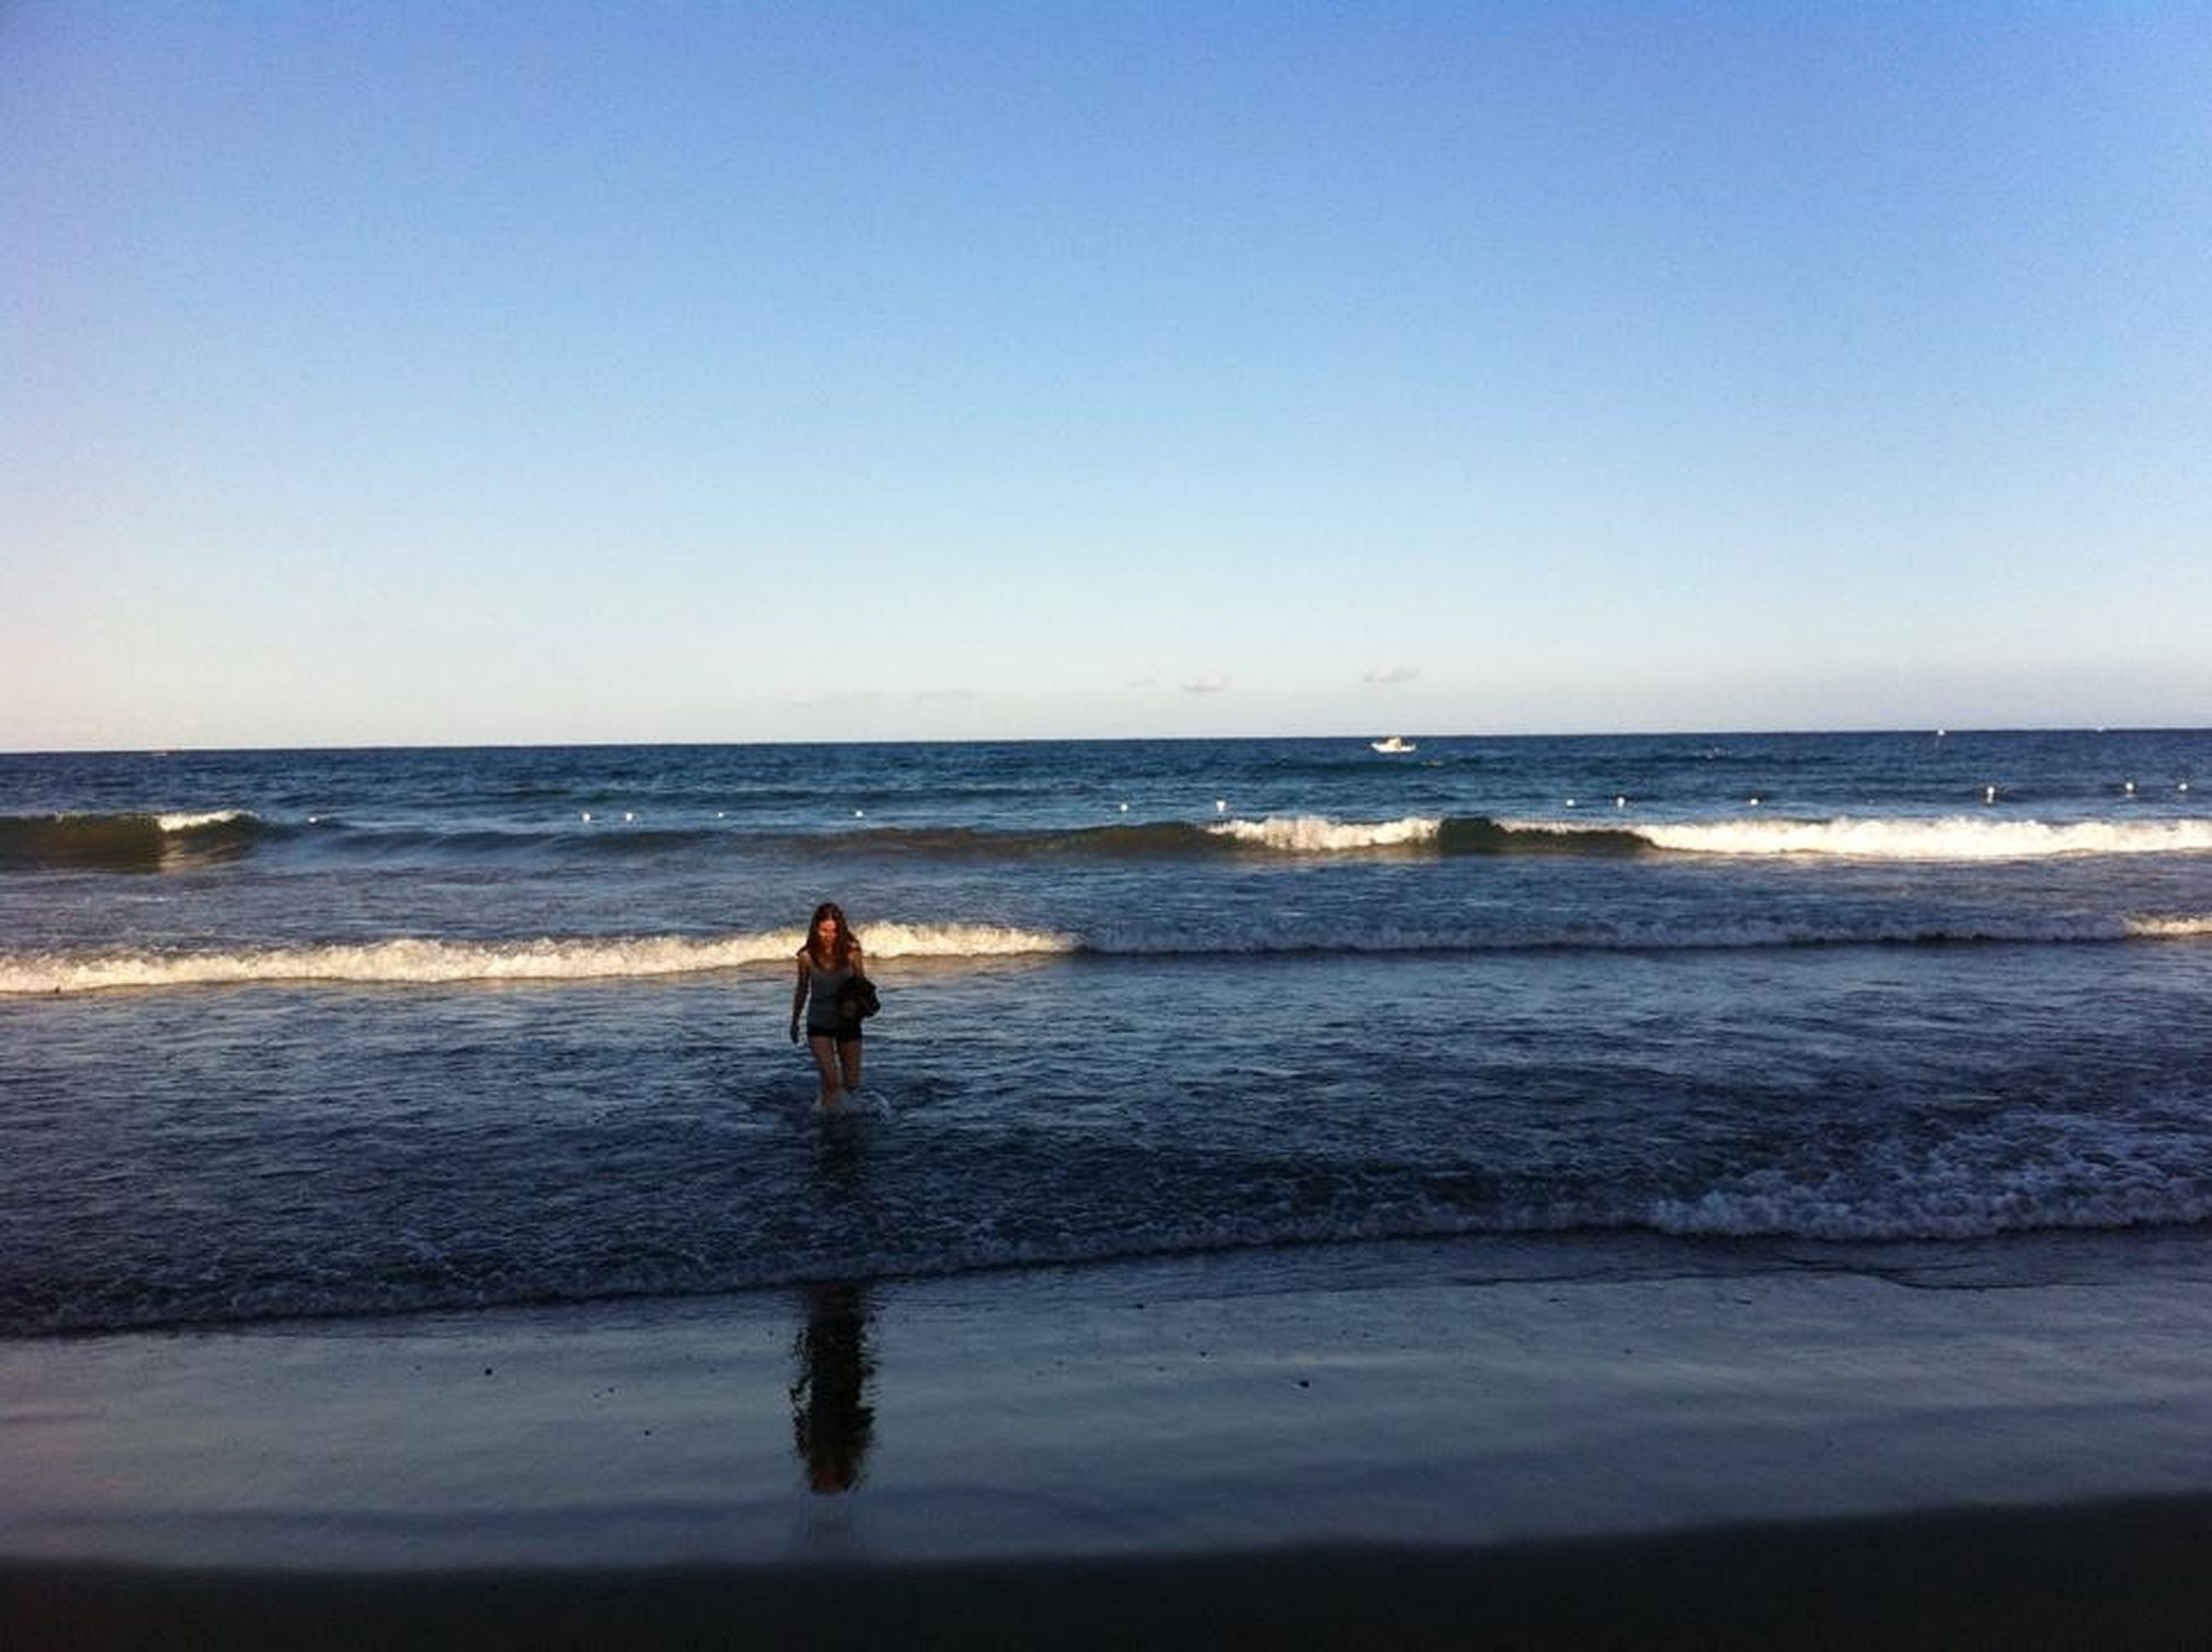 sea, horizon over water, beach, water, clear sky, shore, copy space, leisure activity, lifestyles, full length, scenics, vacations, sand, standing, tranquil scene, wave, rear view, tranquility